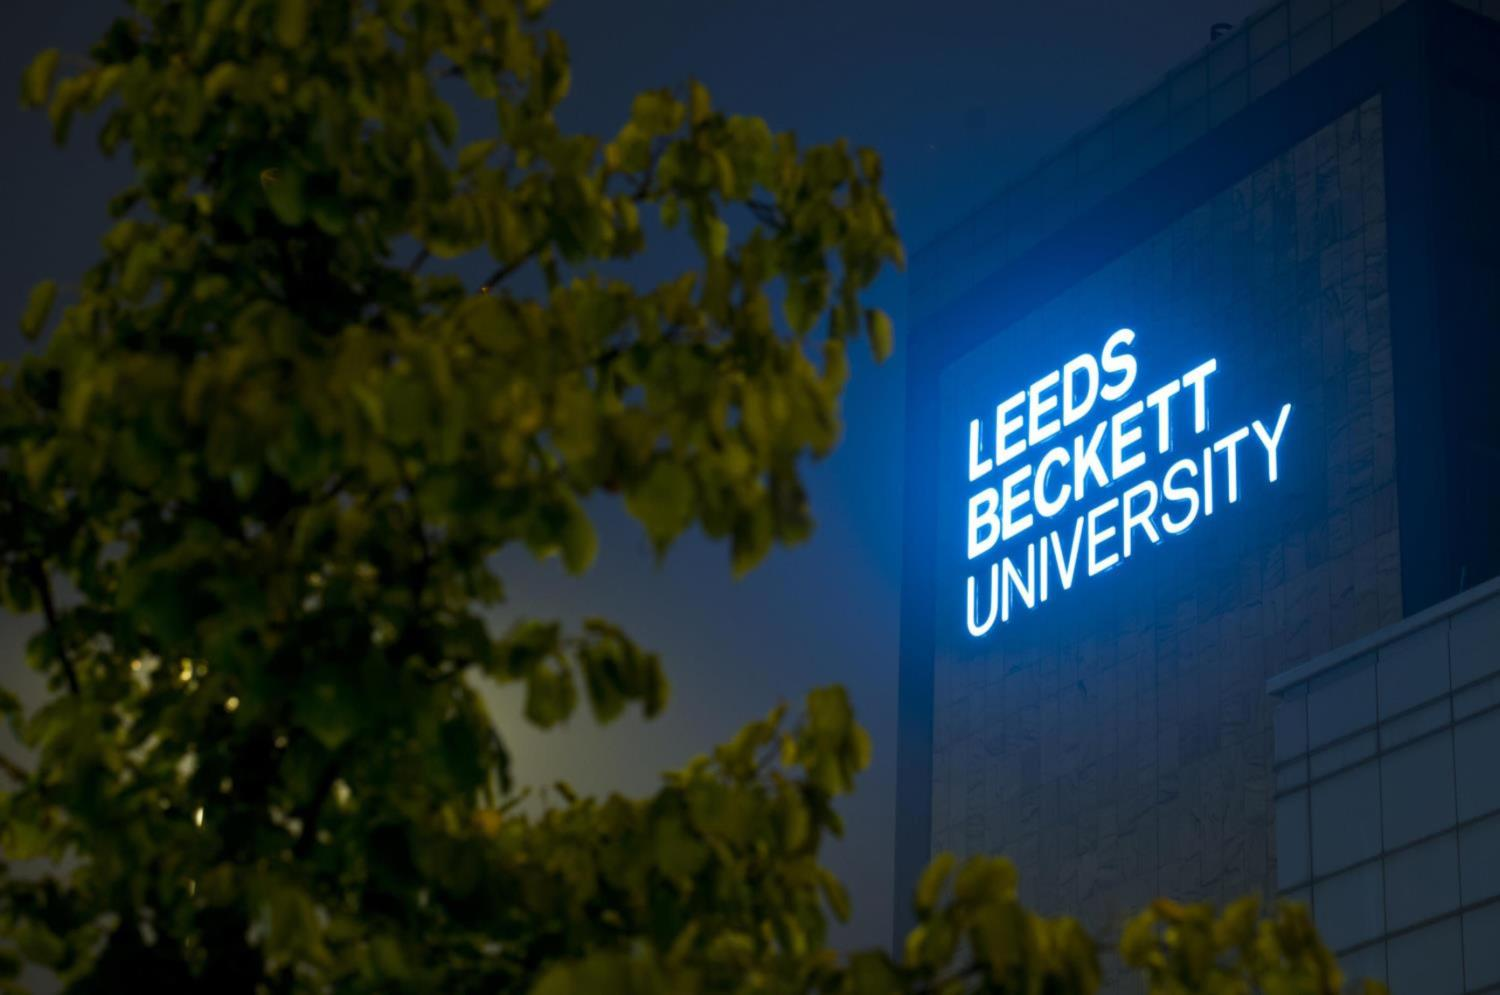 Portland Building with Leeds Beckett University sign